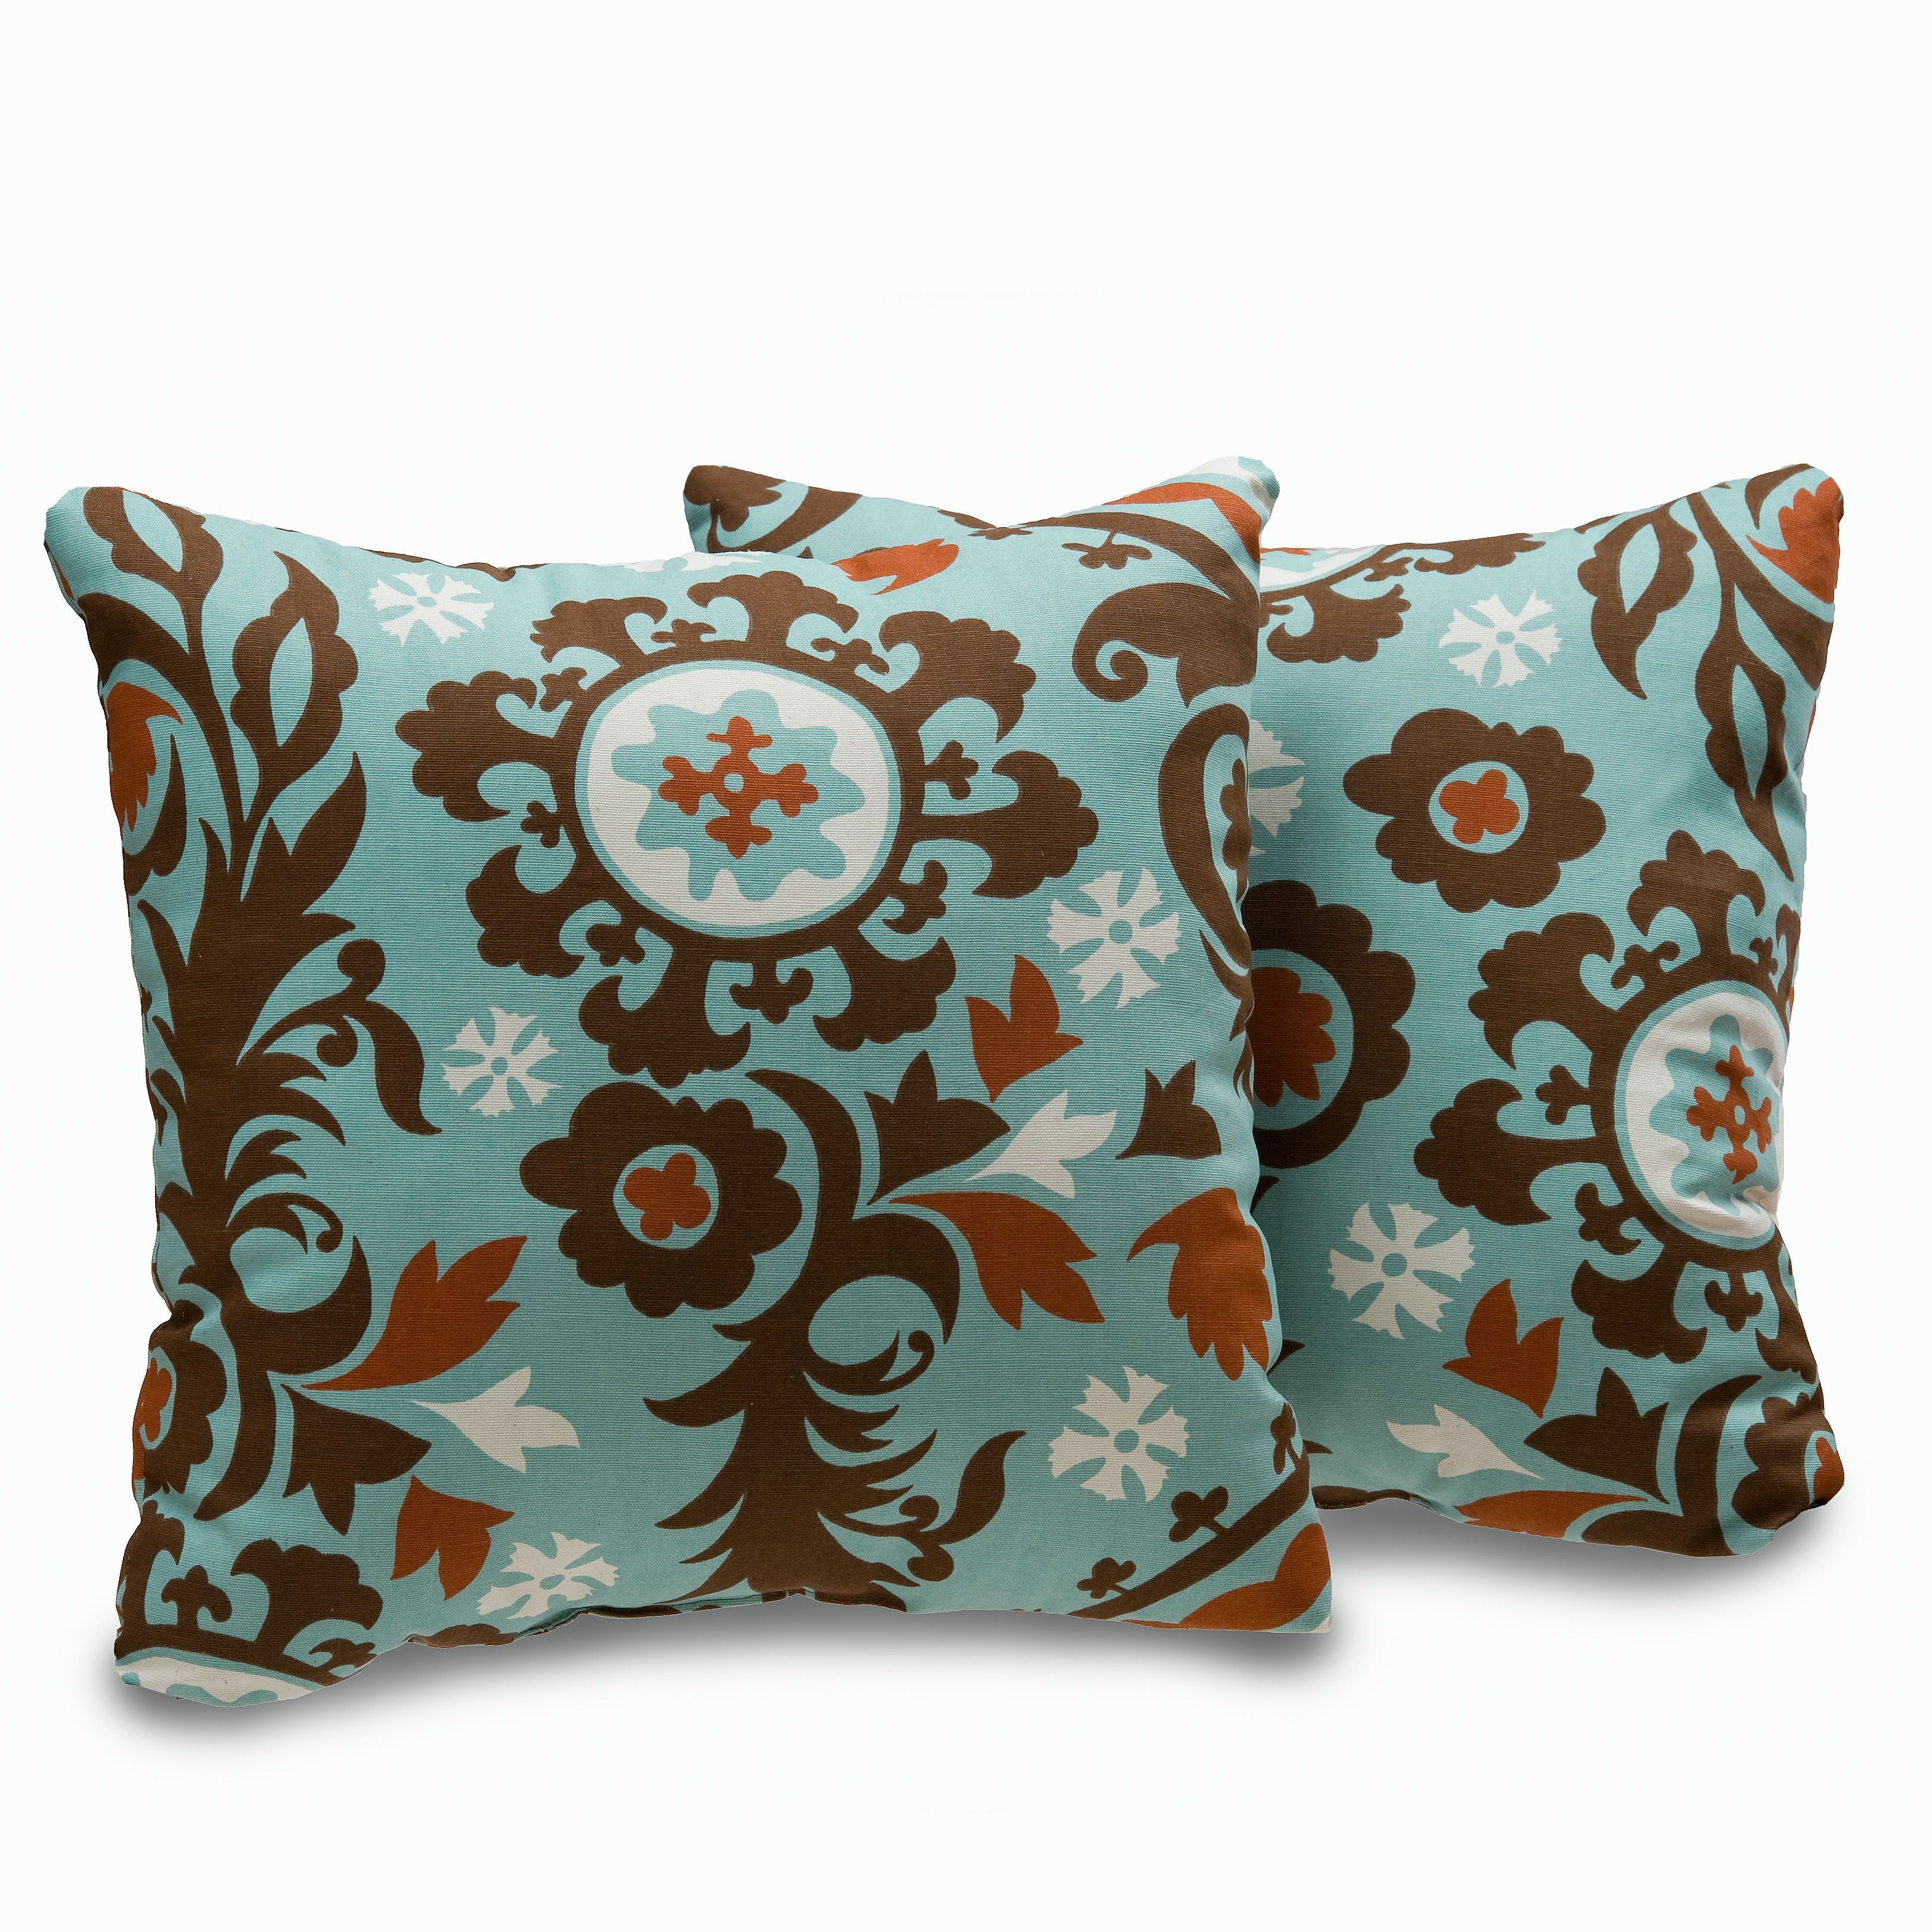 Add charming appeal and complete the look of your favorite living space with this set of two, Uptown decorative throw pillows. These attractive accents offer a soft cotton cover construction and a geometric-inspired pattern.